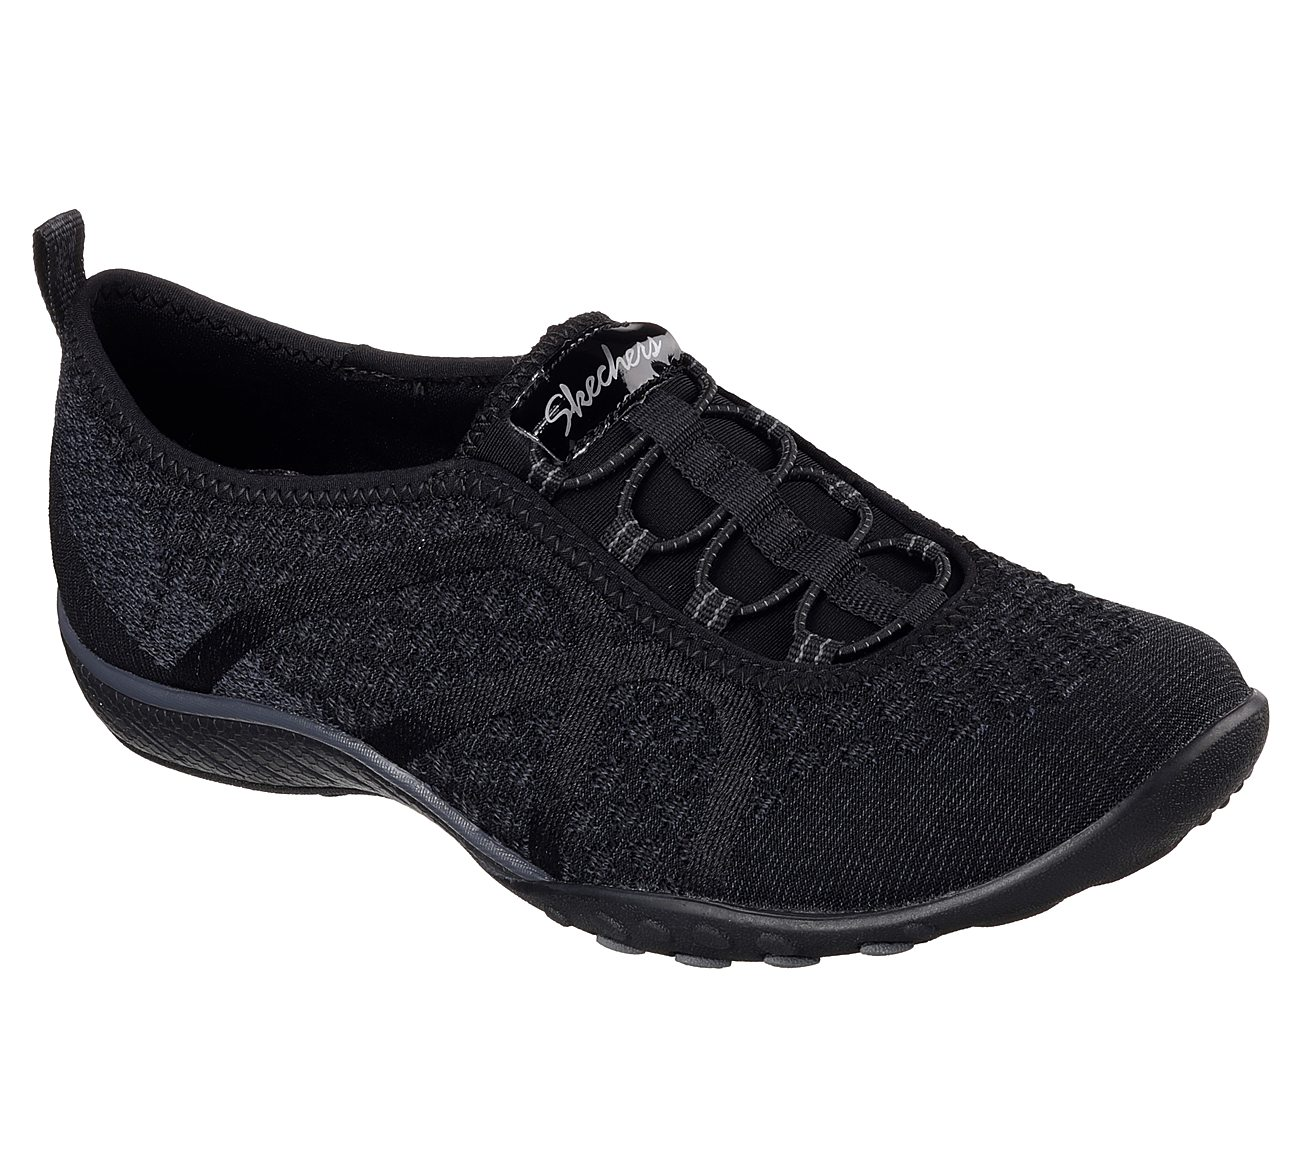 Details about Skechers Women's Size 10 Slip On Sneakers Black w Memory Foam Bungee Lace